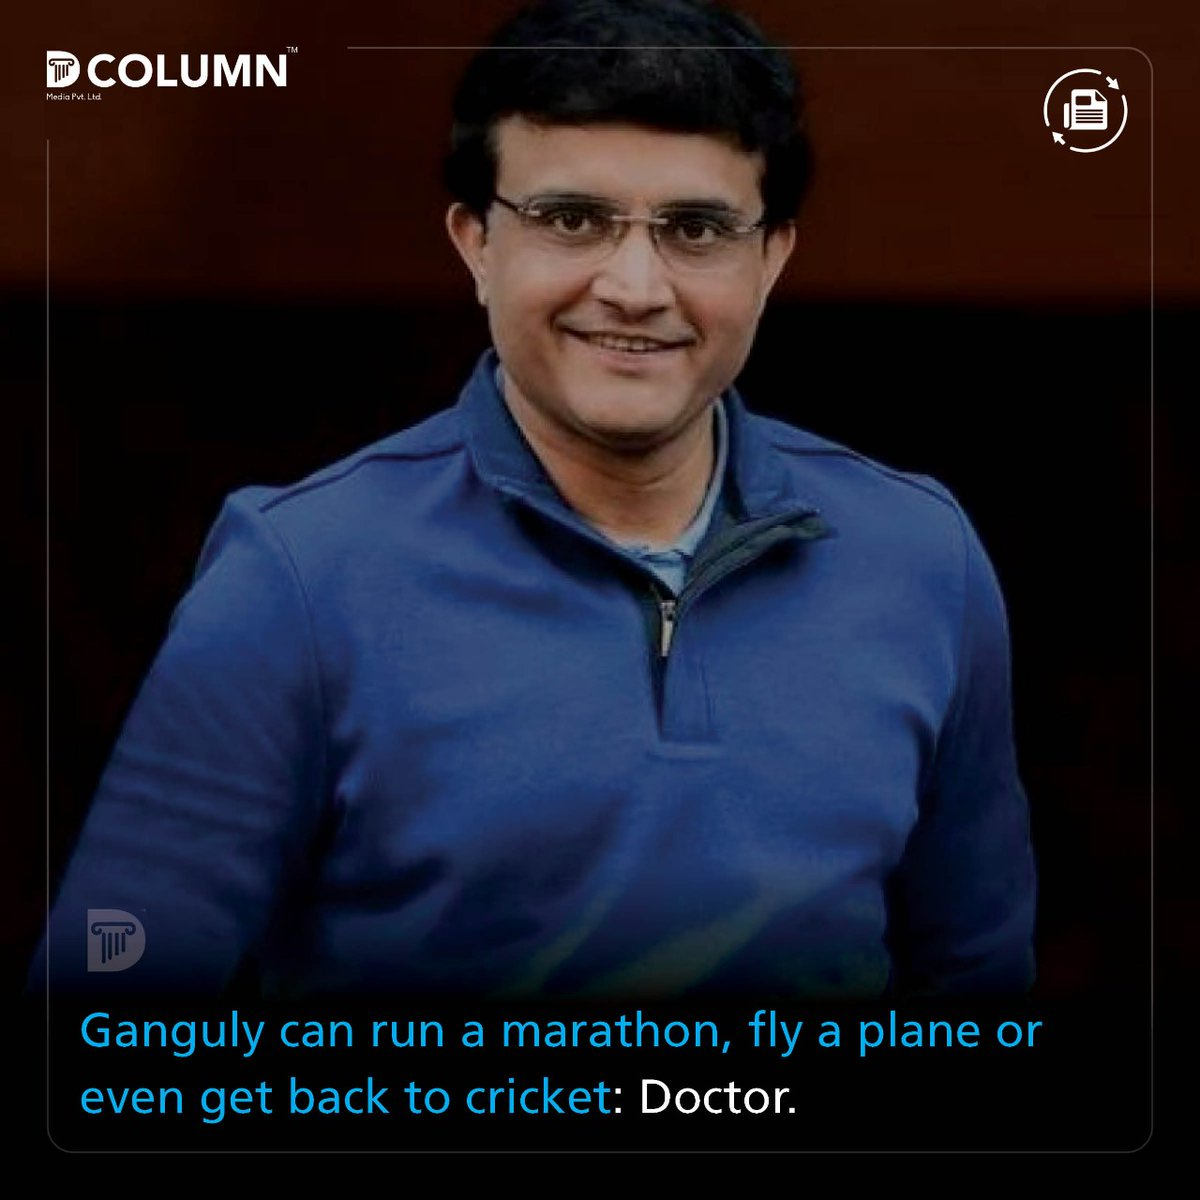 D Column Media On Twitter Cardiac Surgeon Devi Shetty Who Examined Sourav Ganguly At A Hospital In Kolkata Has Said That The Bcci President S Heart Has Not Suffered Any Damage After The